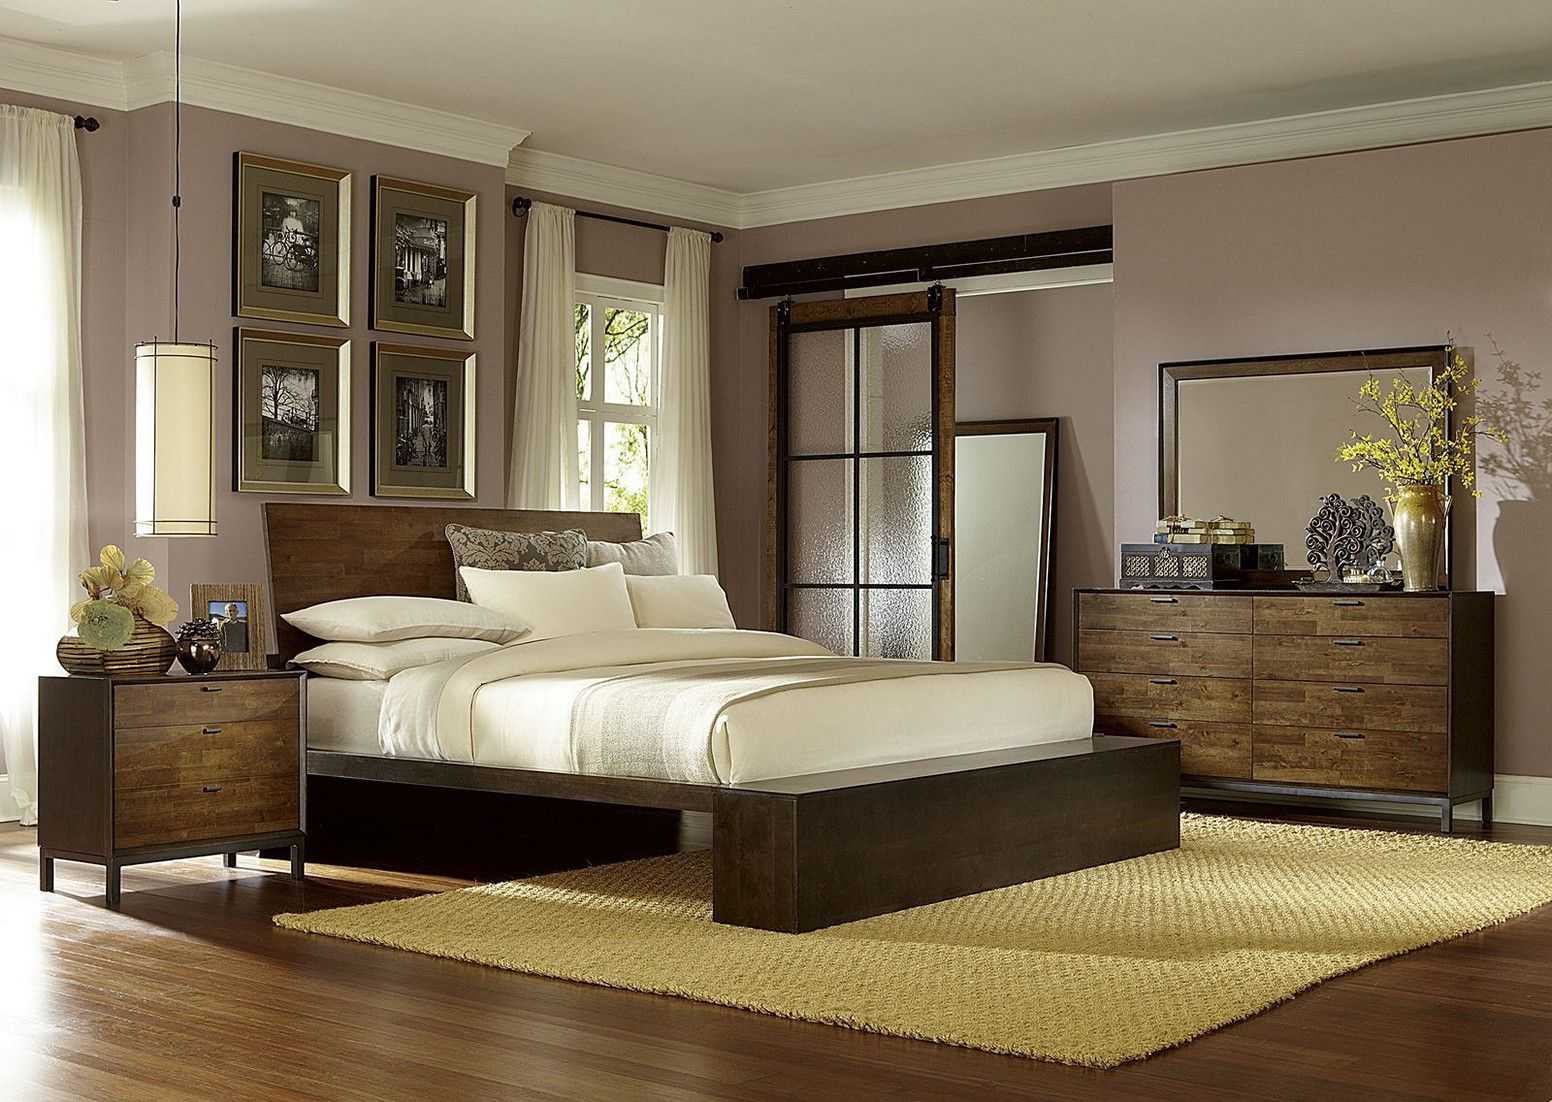 Contemporary Headboard Ideas for your Modern Bedroom  Diy queen bed